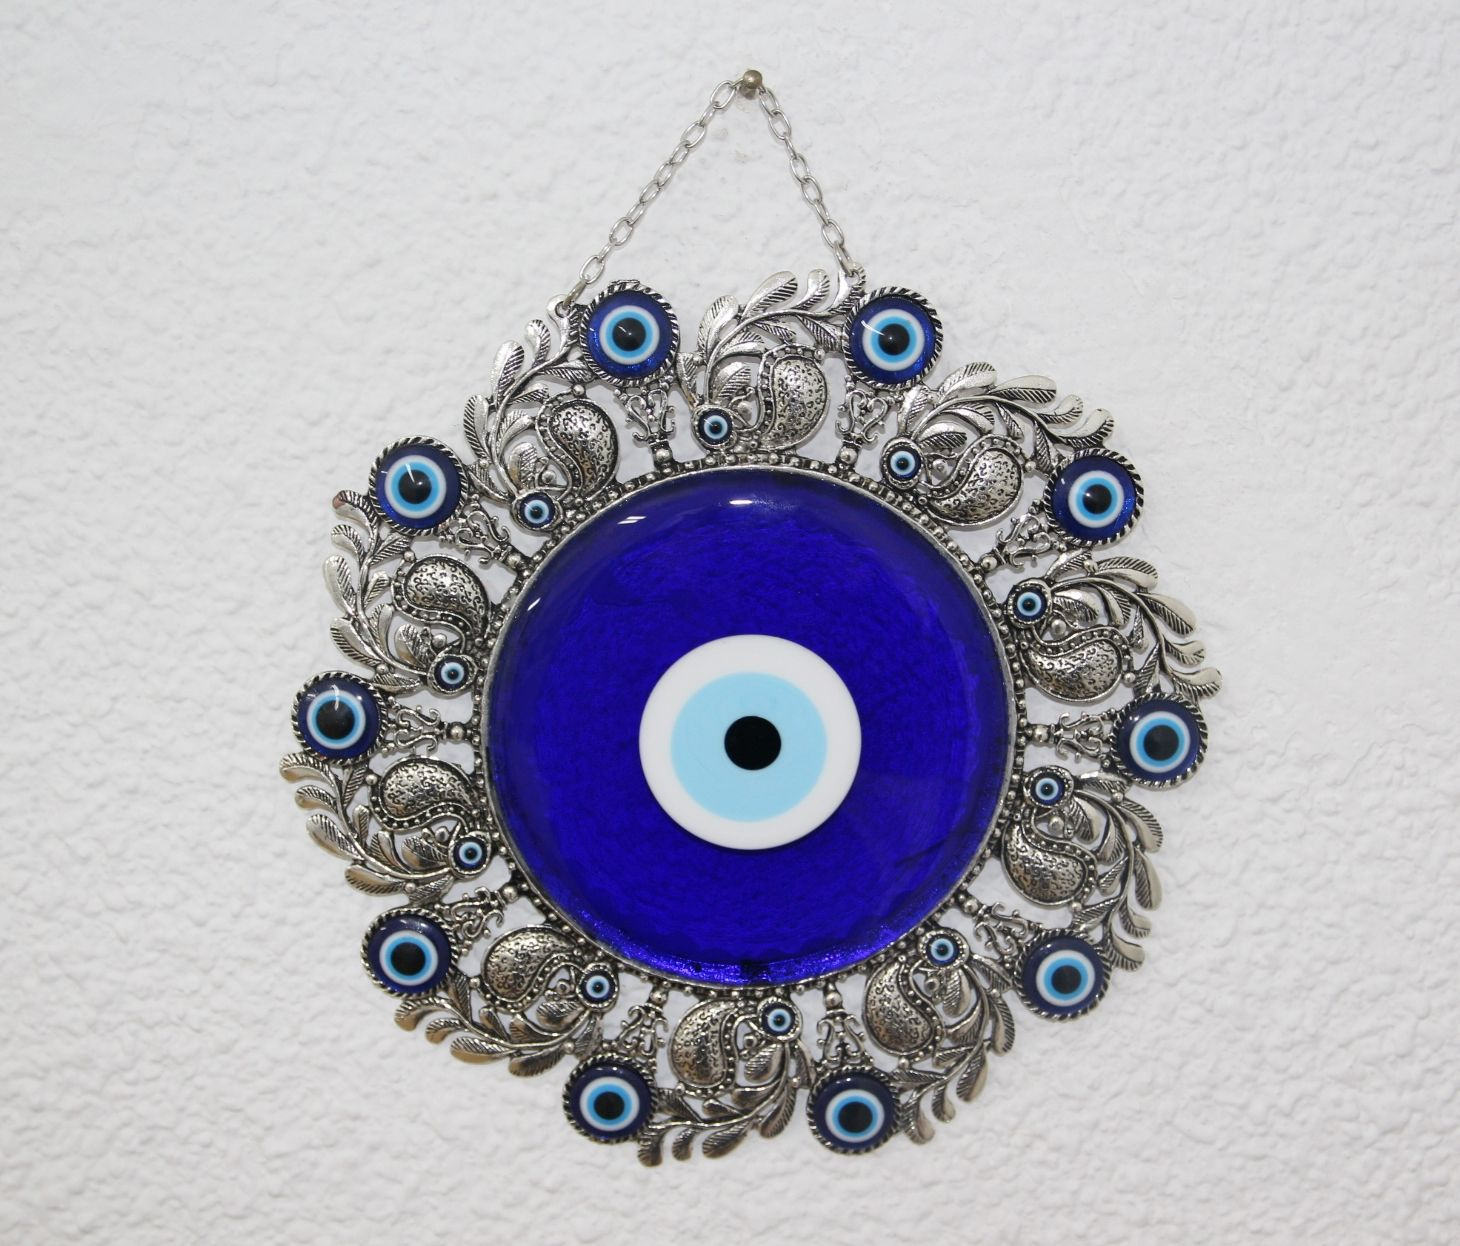 Evil Eye Wall Hanging evil eye wall hanging, largewww.grandbazaarshopping | evil